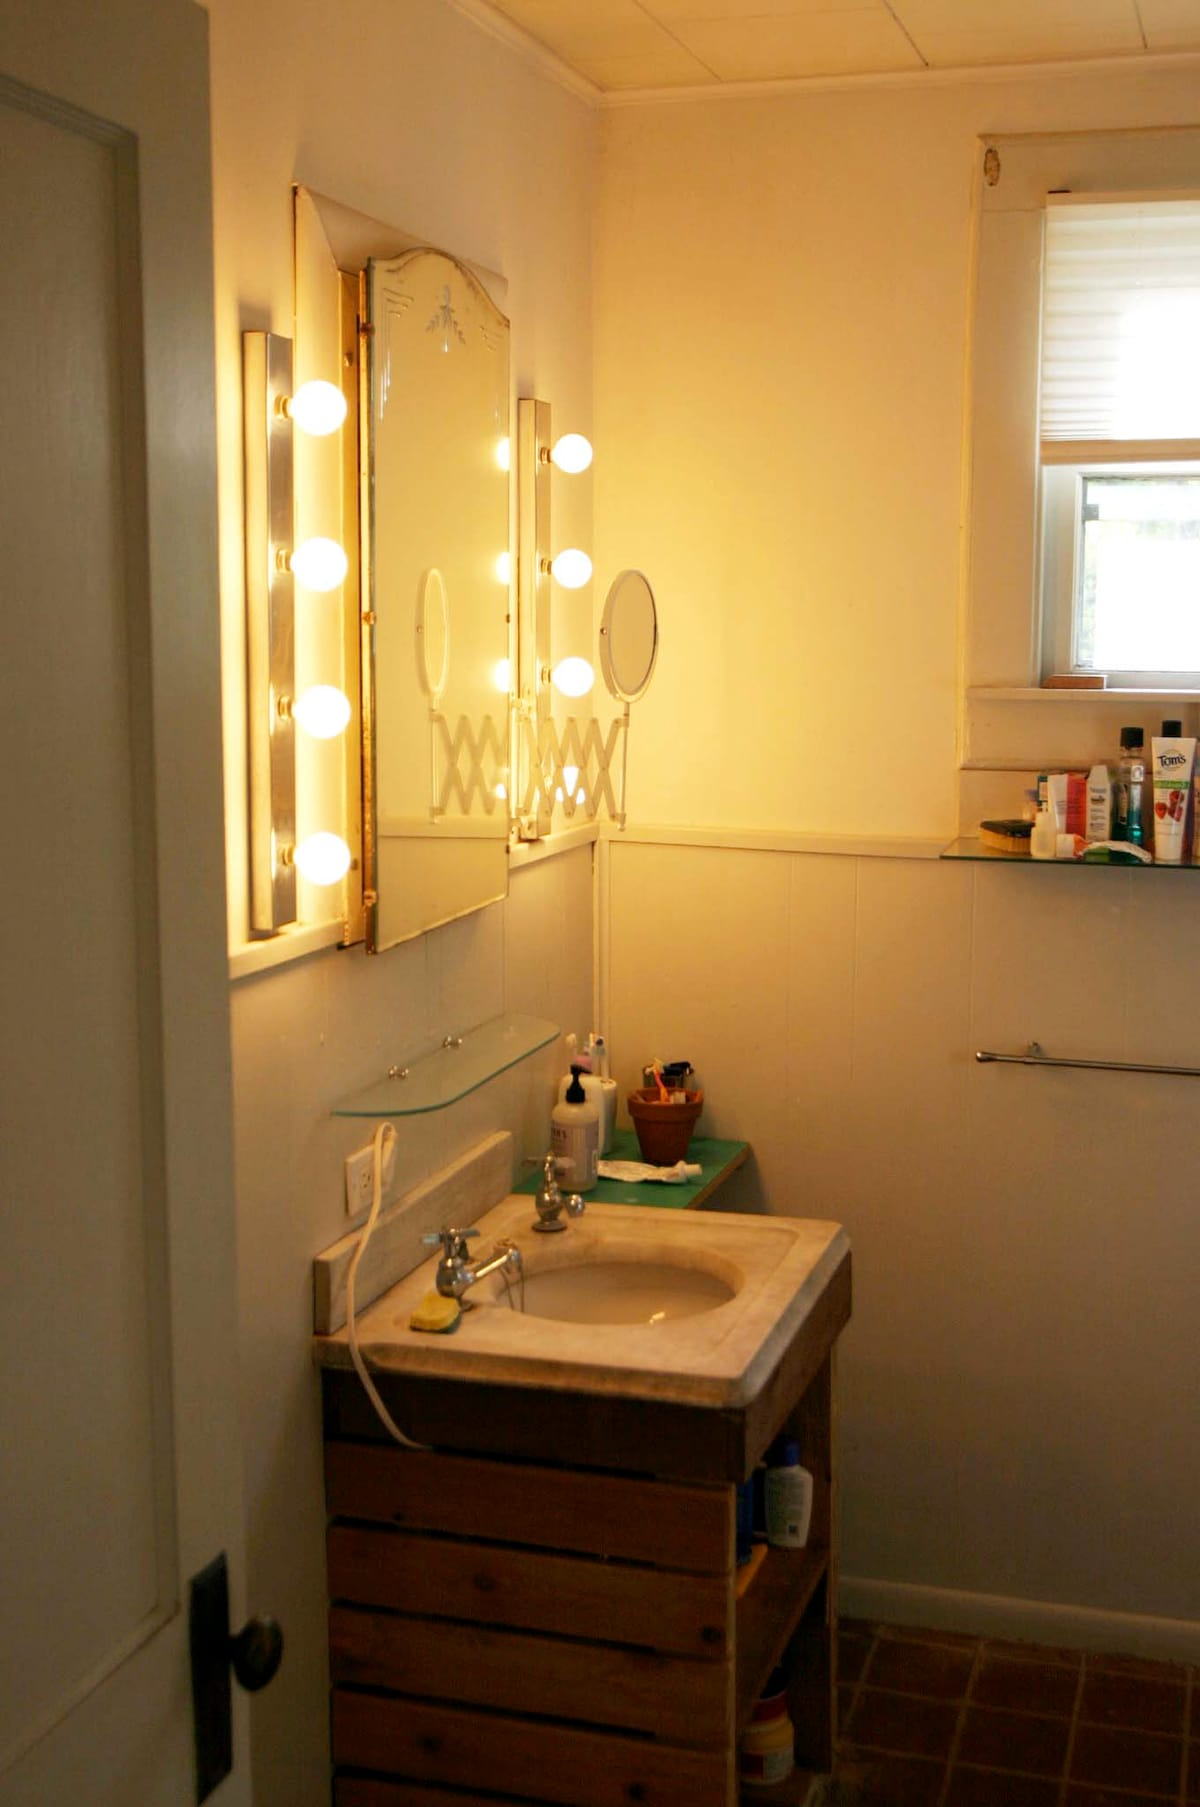 The bathrrom has a nice old marble sink, original mirror, terra cotta tile floor.